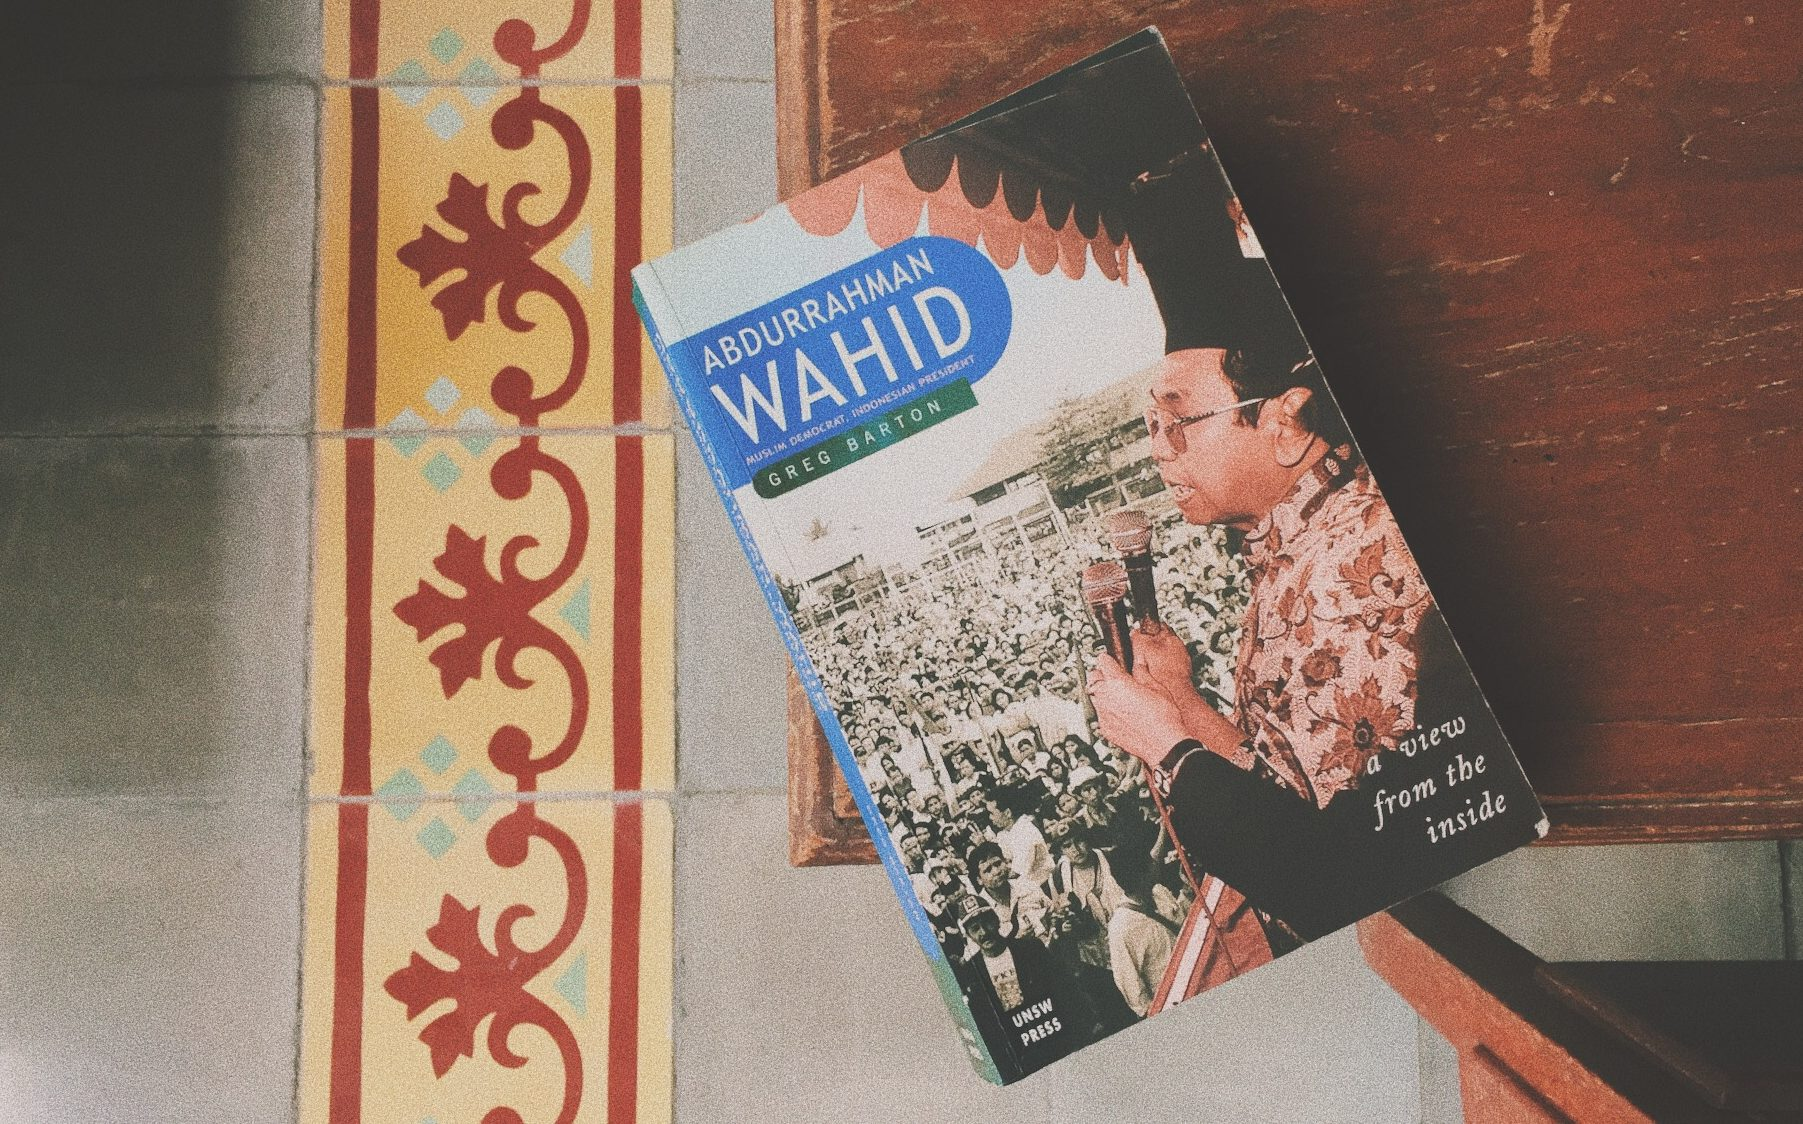 Book Review: Abdurrahman Wahid by Greg Barton